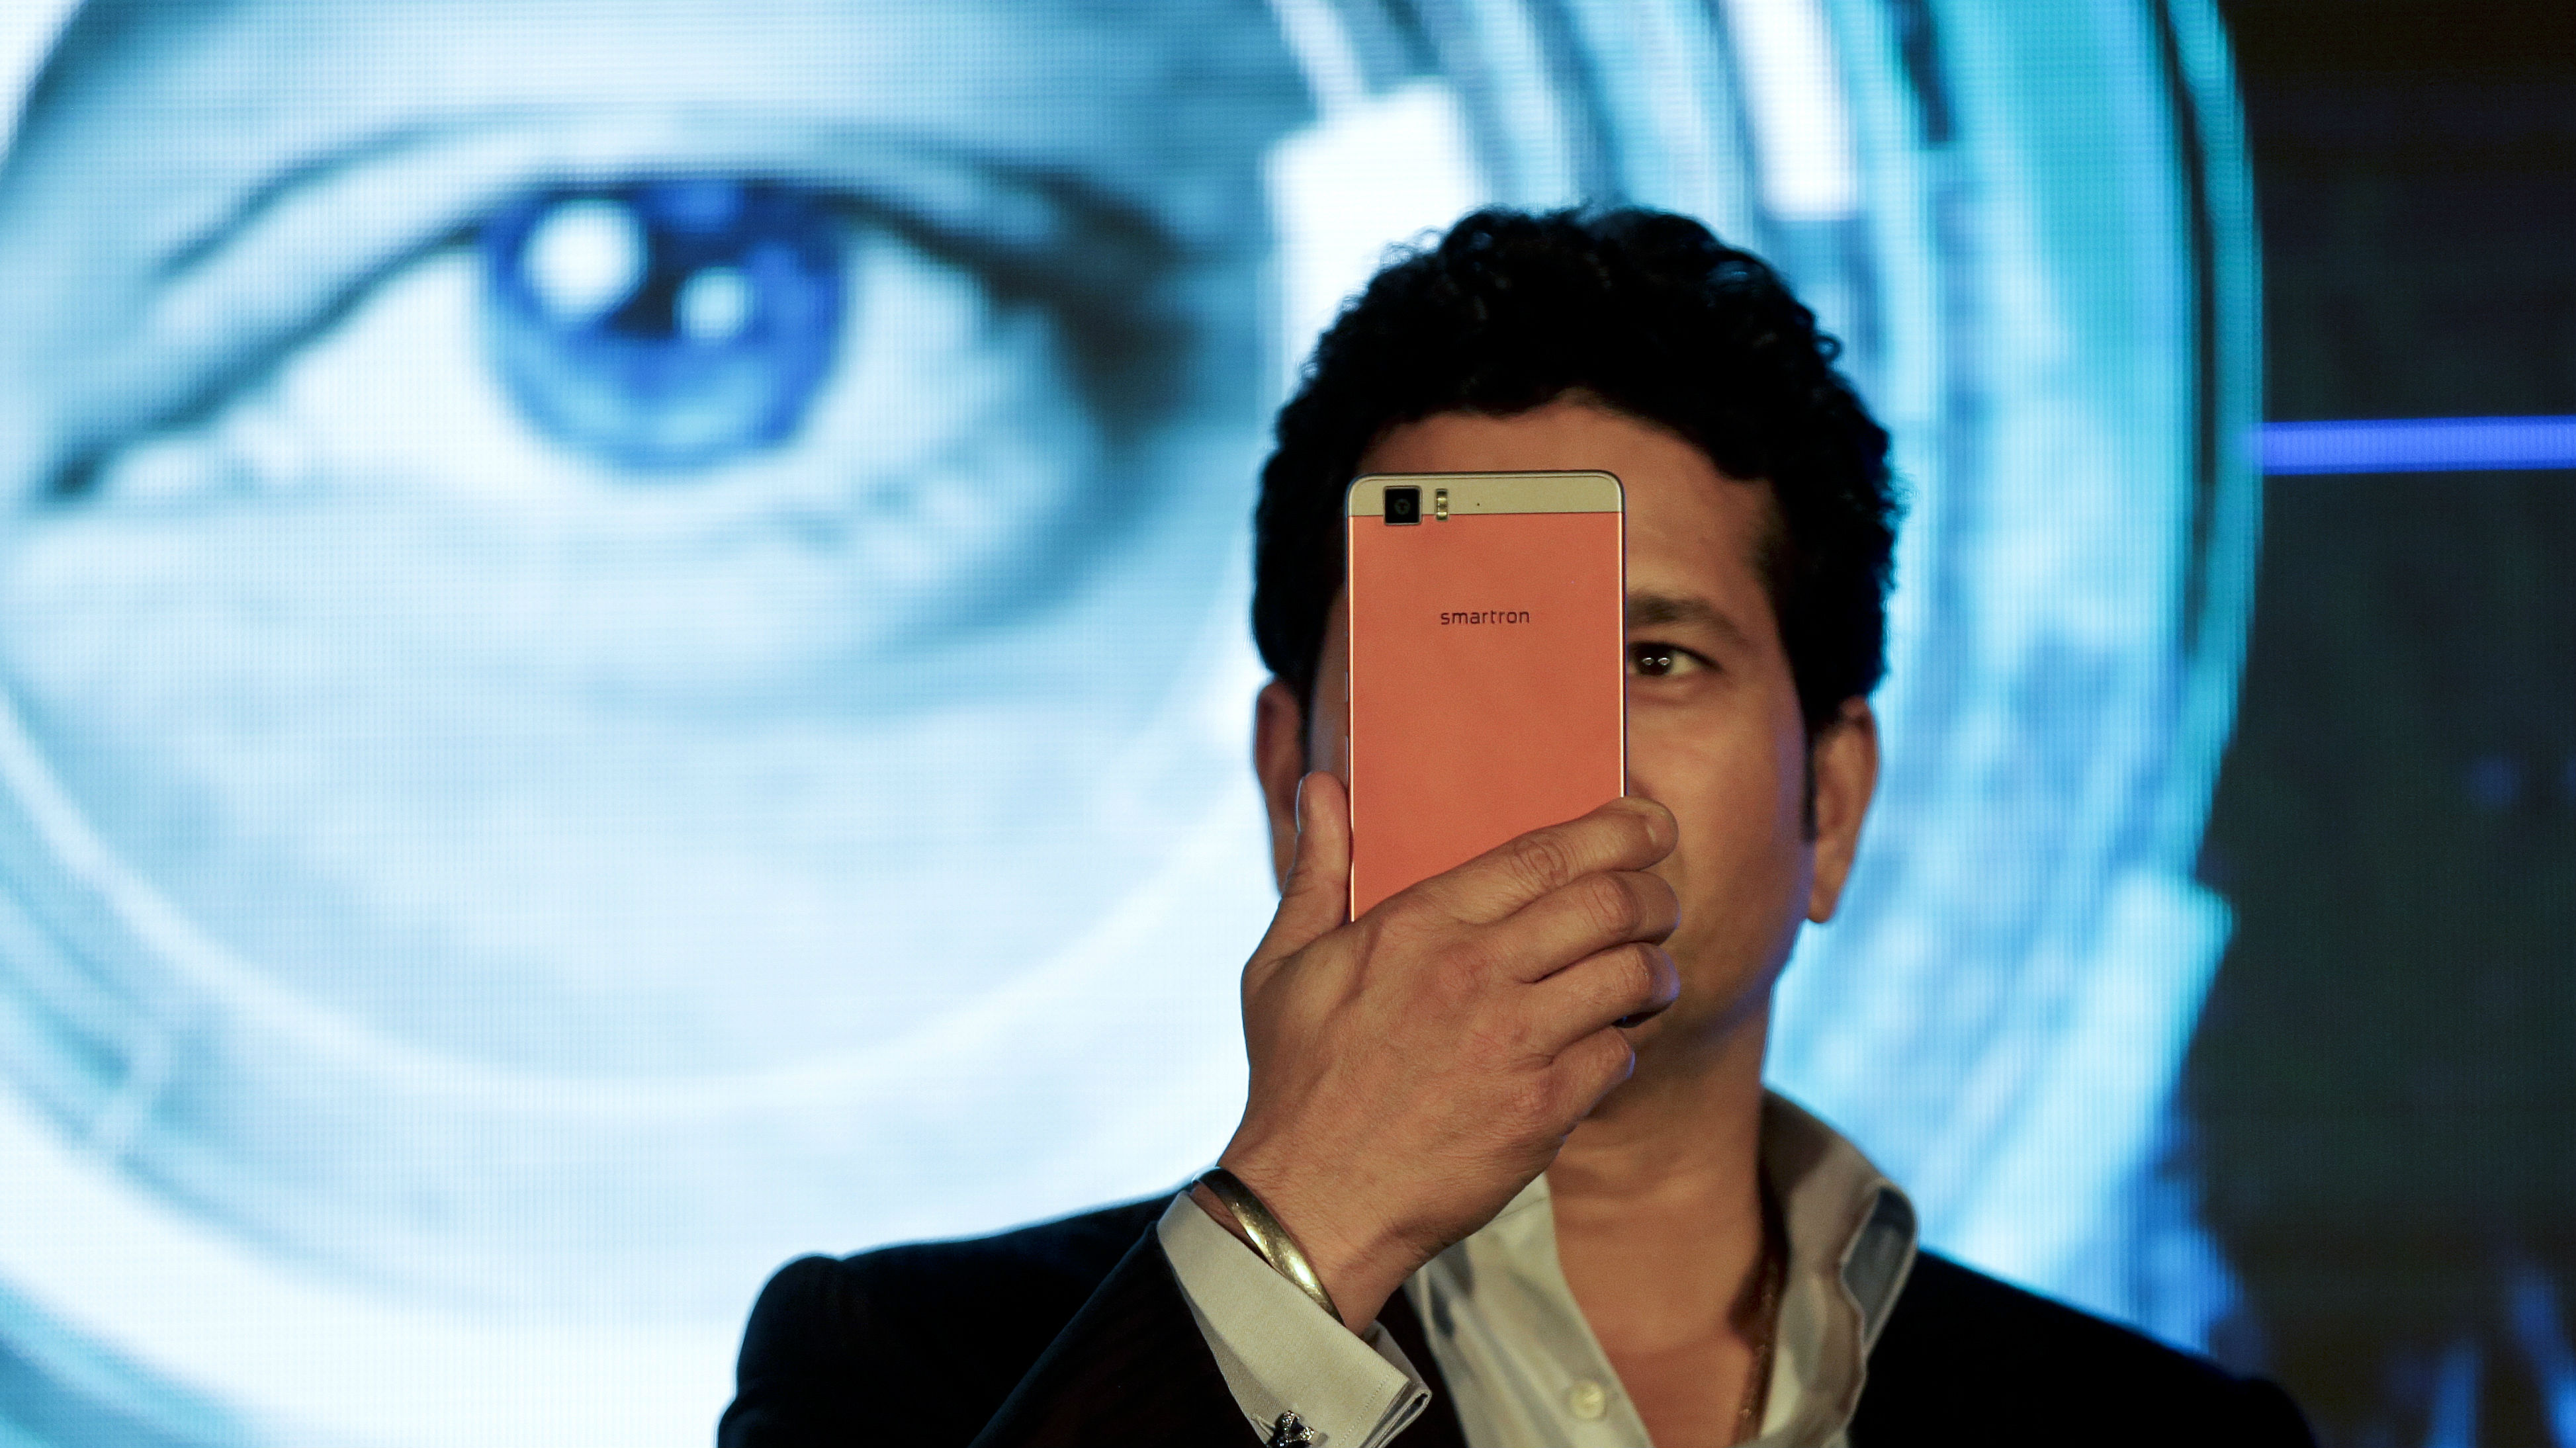 Former Indian cricketer Sachin Tendulkar scans his iris with a t.phone smartphone manufactured by Smartron, India's global technology OEM Company, during its launch in New Delhi, India, Thursday, March 31, 2016.